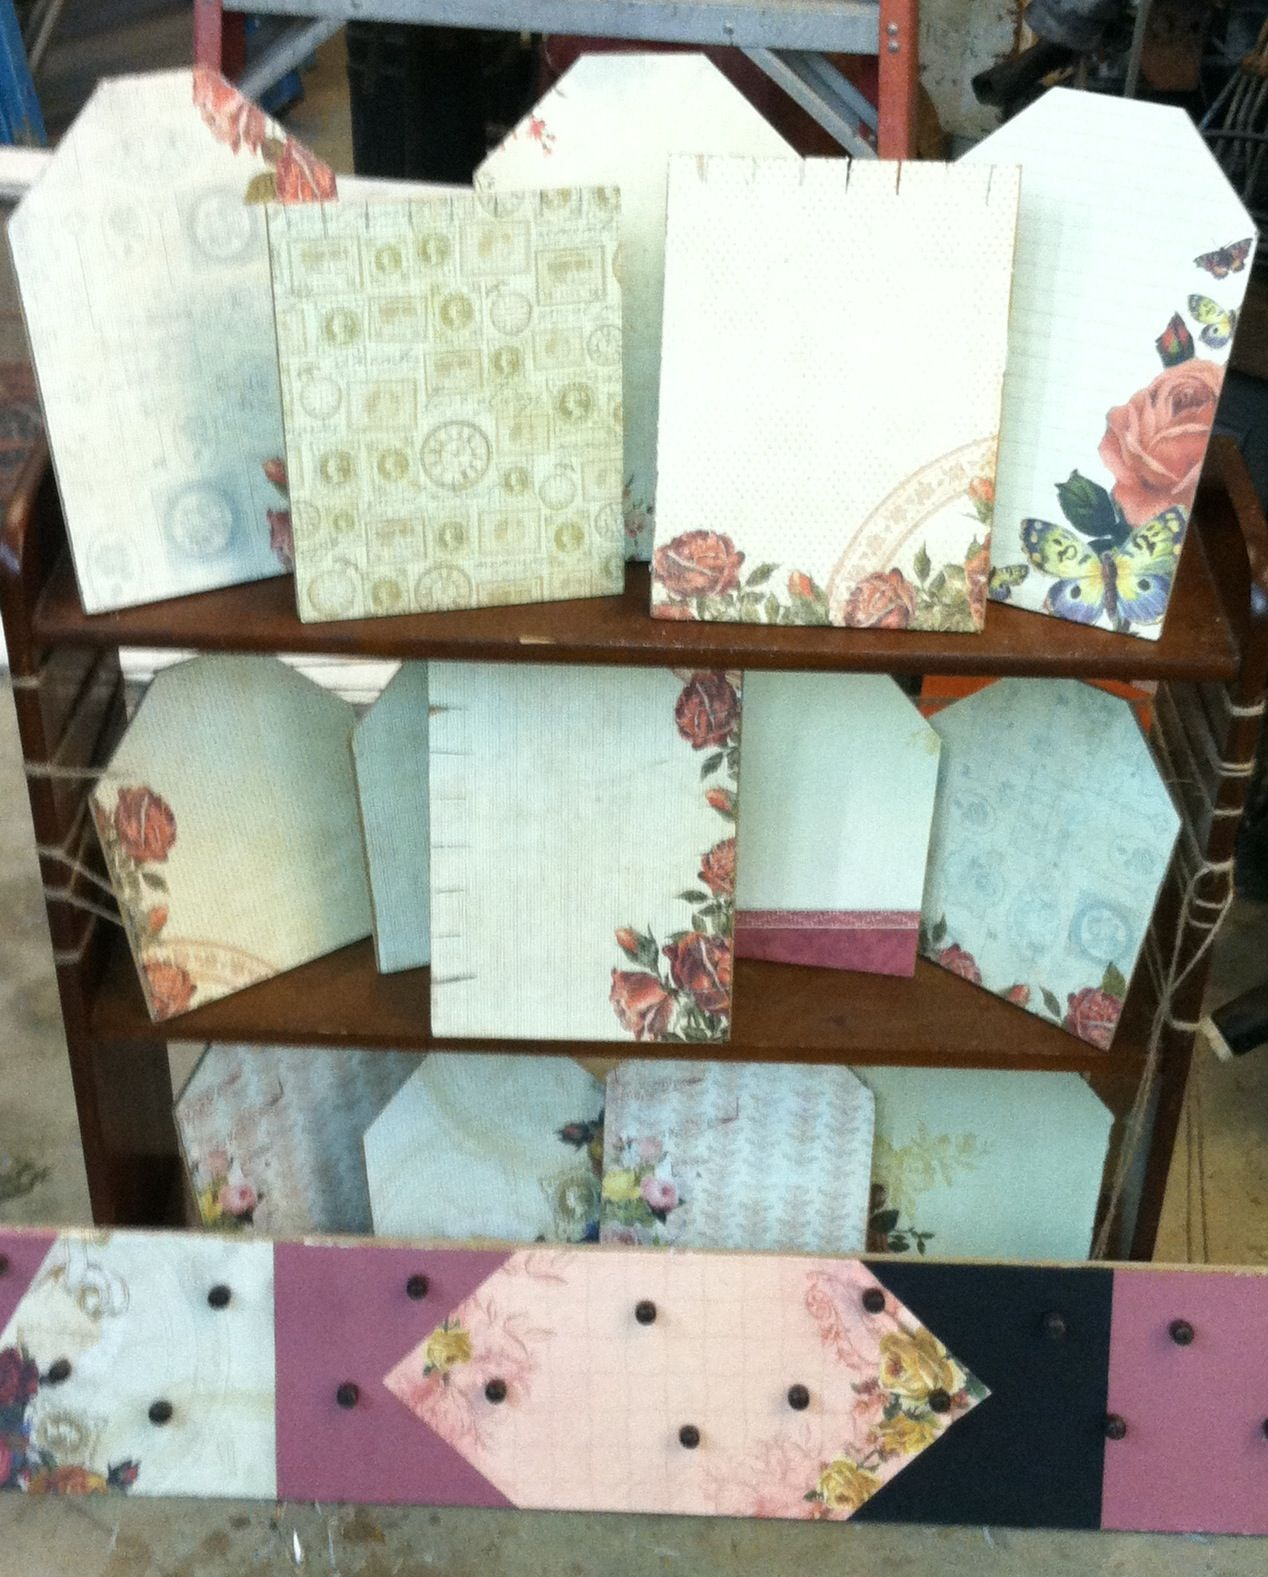 Scrapbook paper display - Made Jewelry Displays Today For My Booth Recycled Laminate Flooring And Scrapbook Paper Scraps What Do You Think